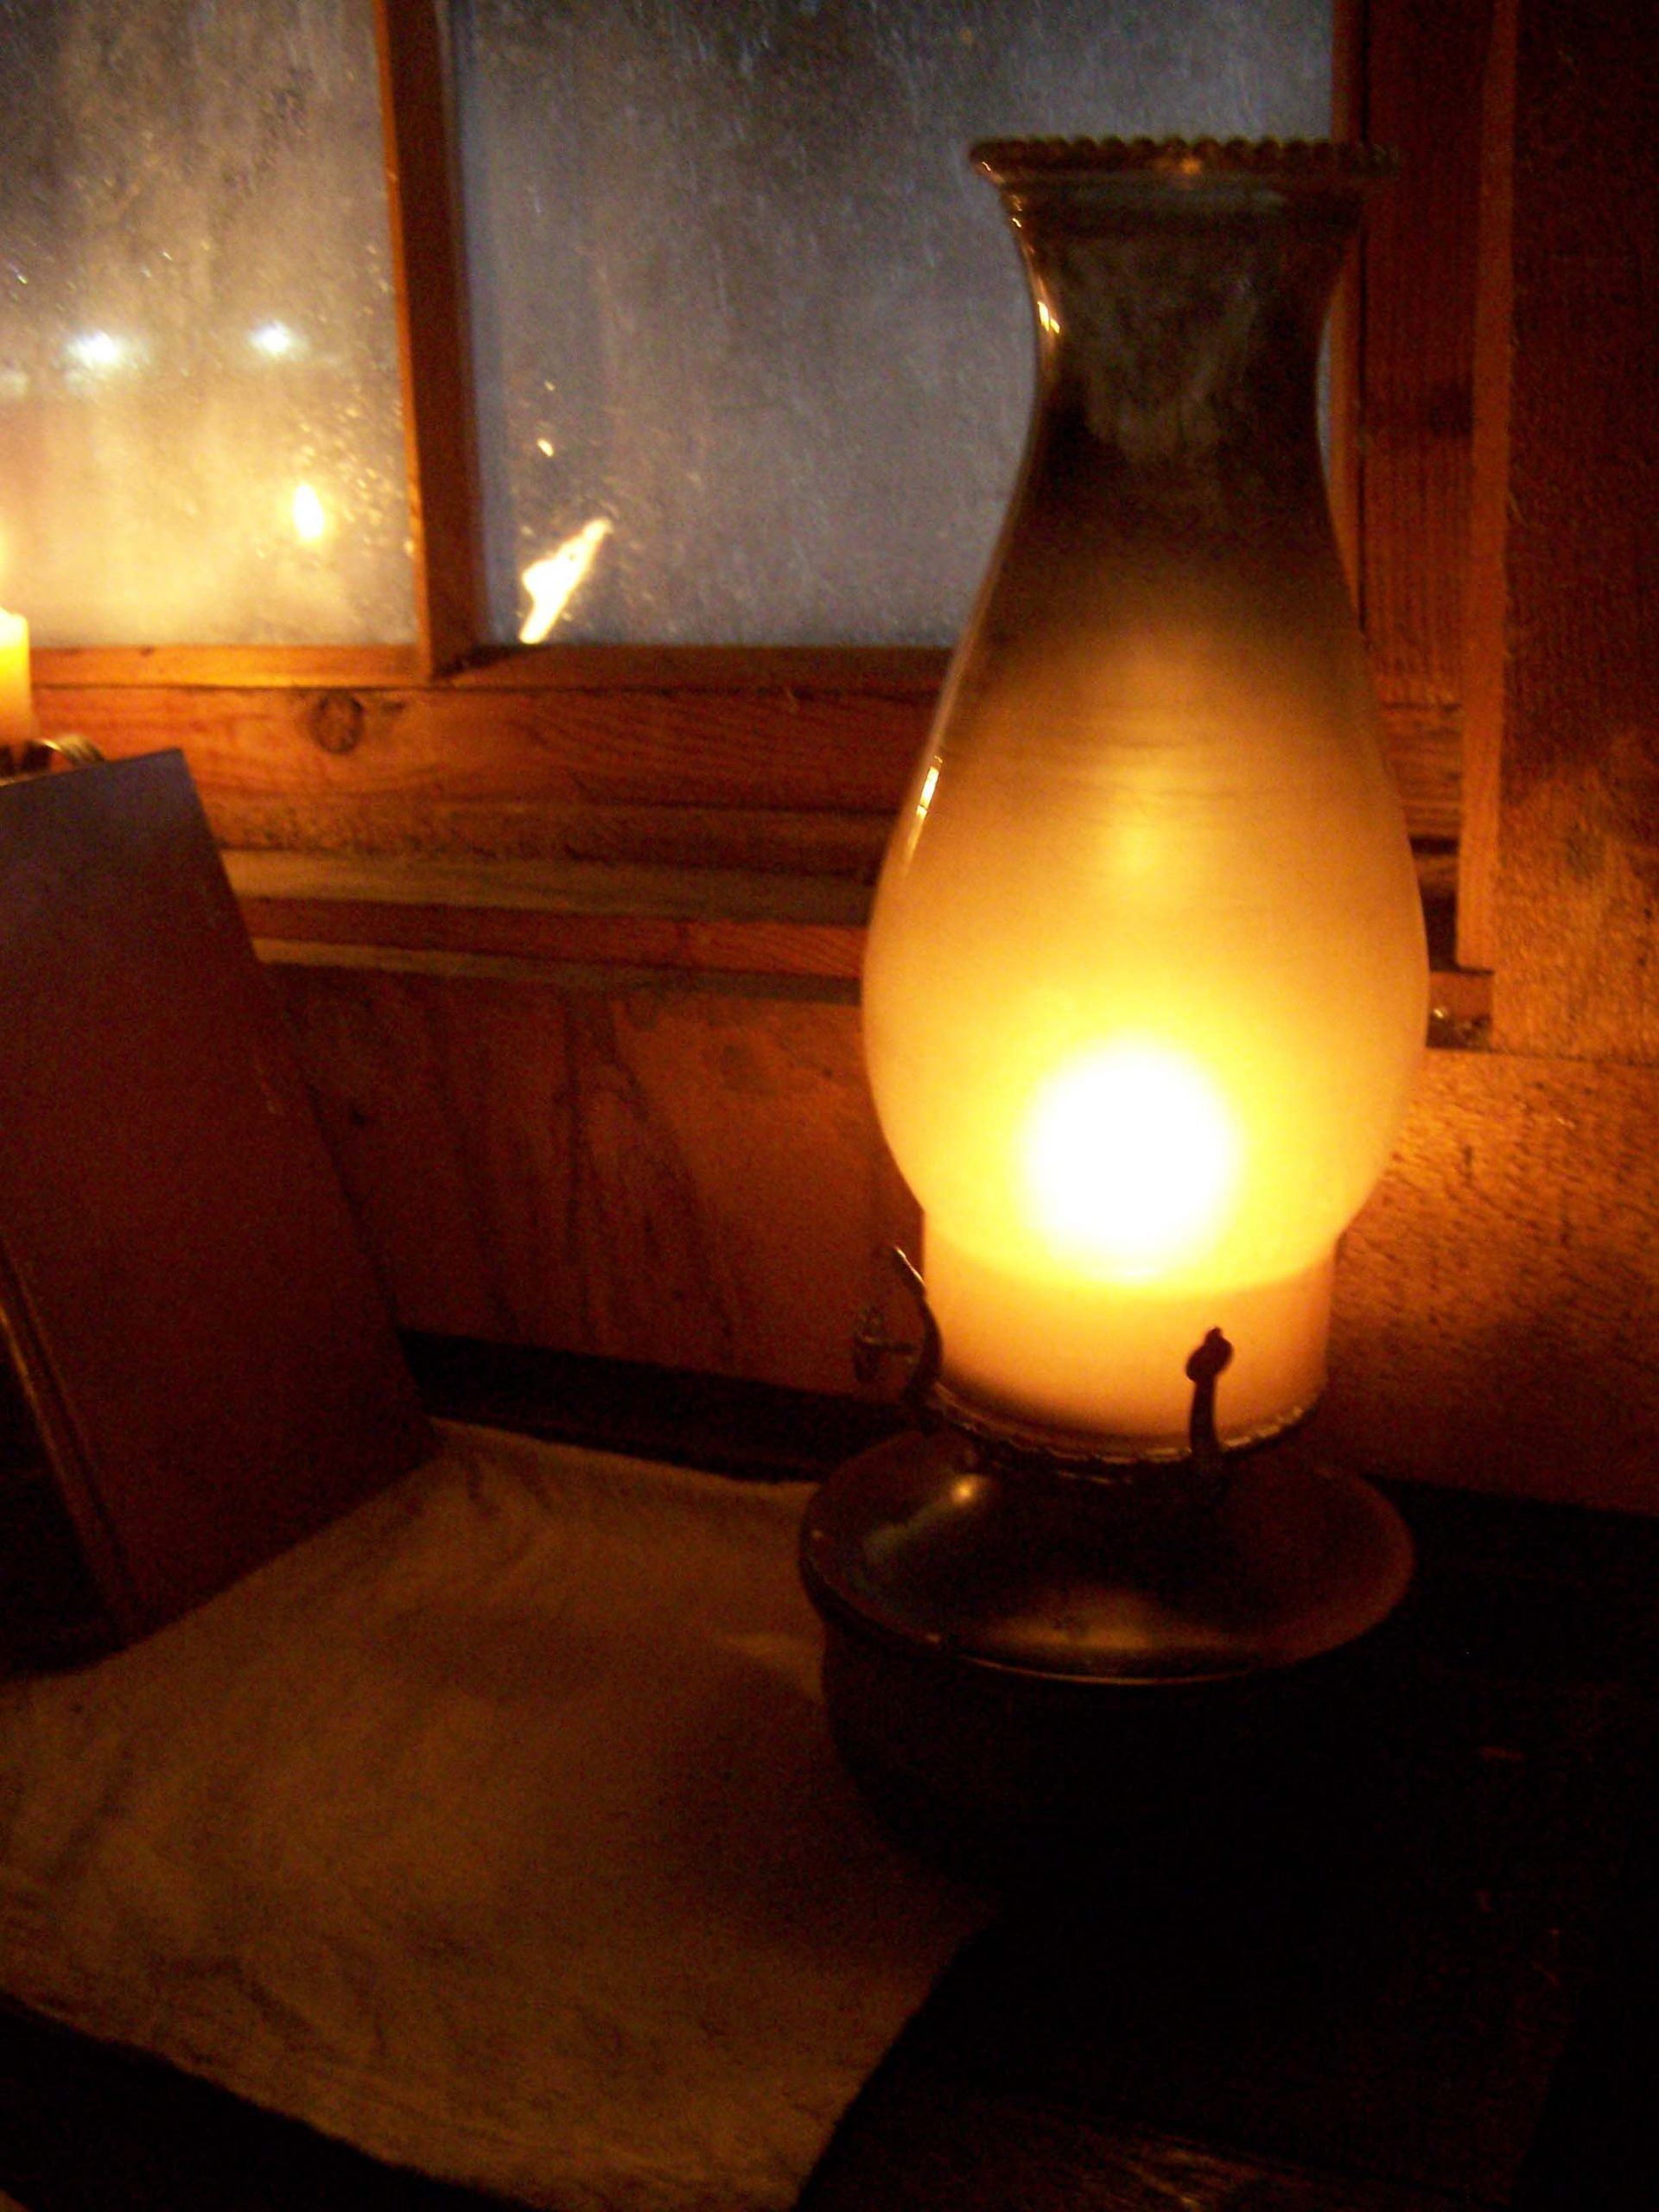 A lighted oil lamp sitting next to a window.